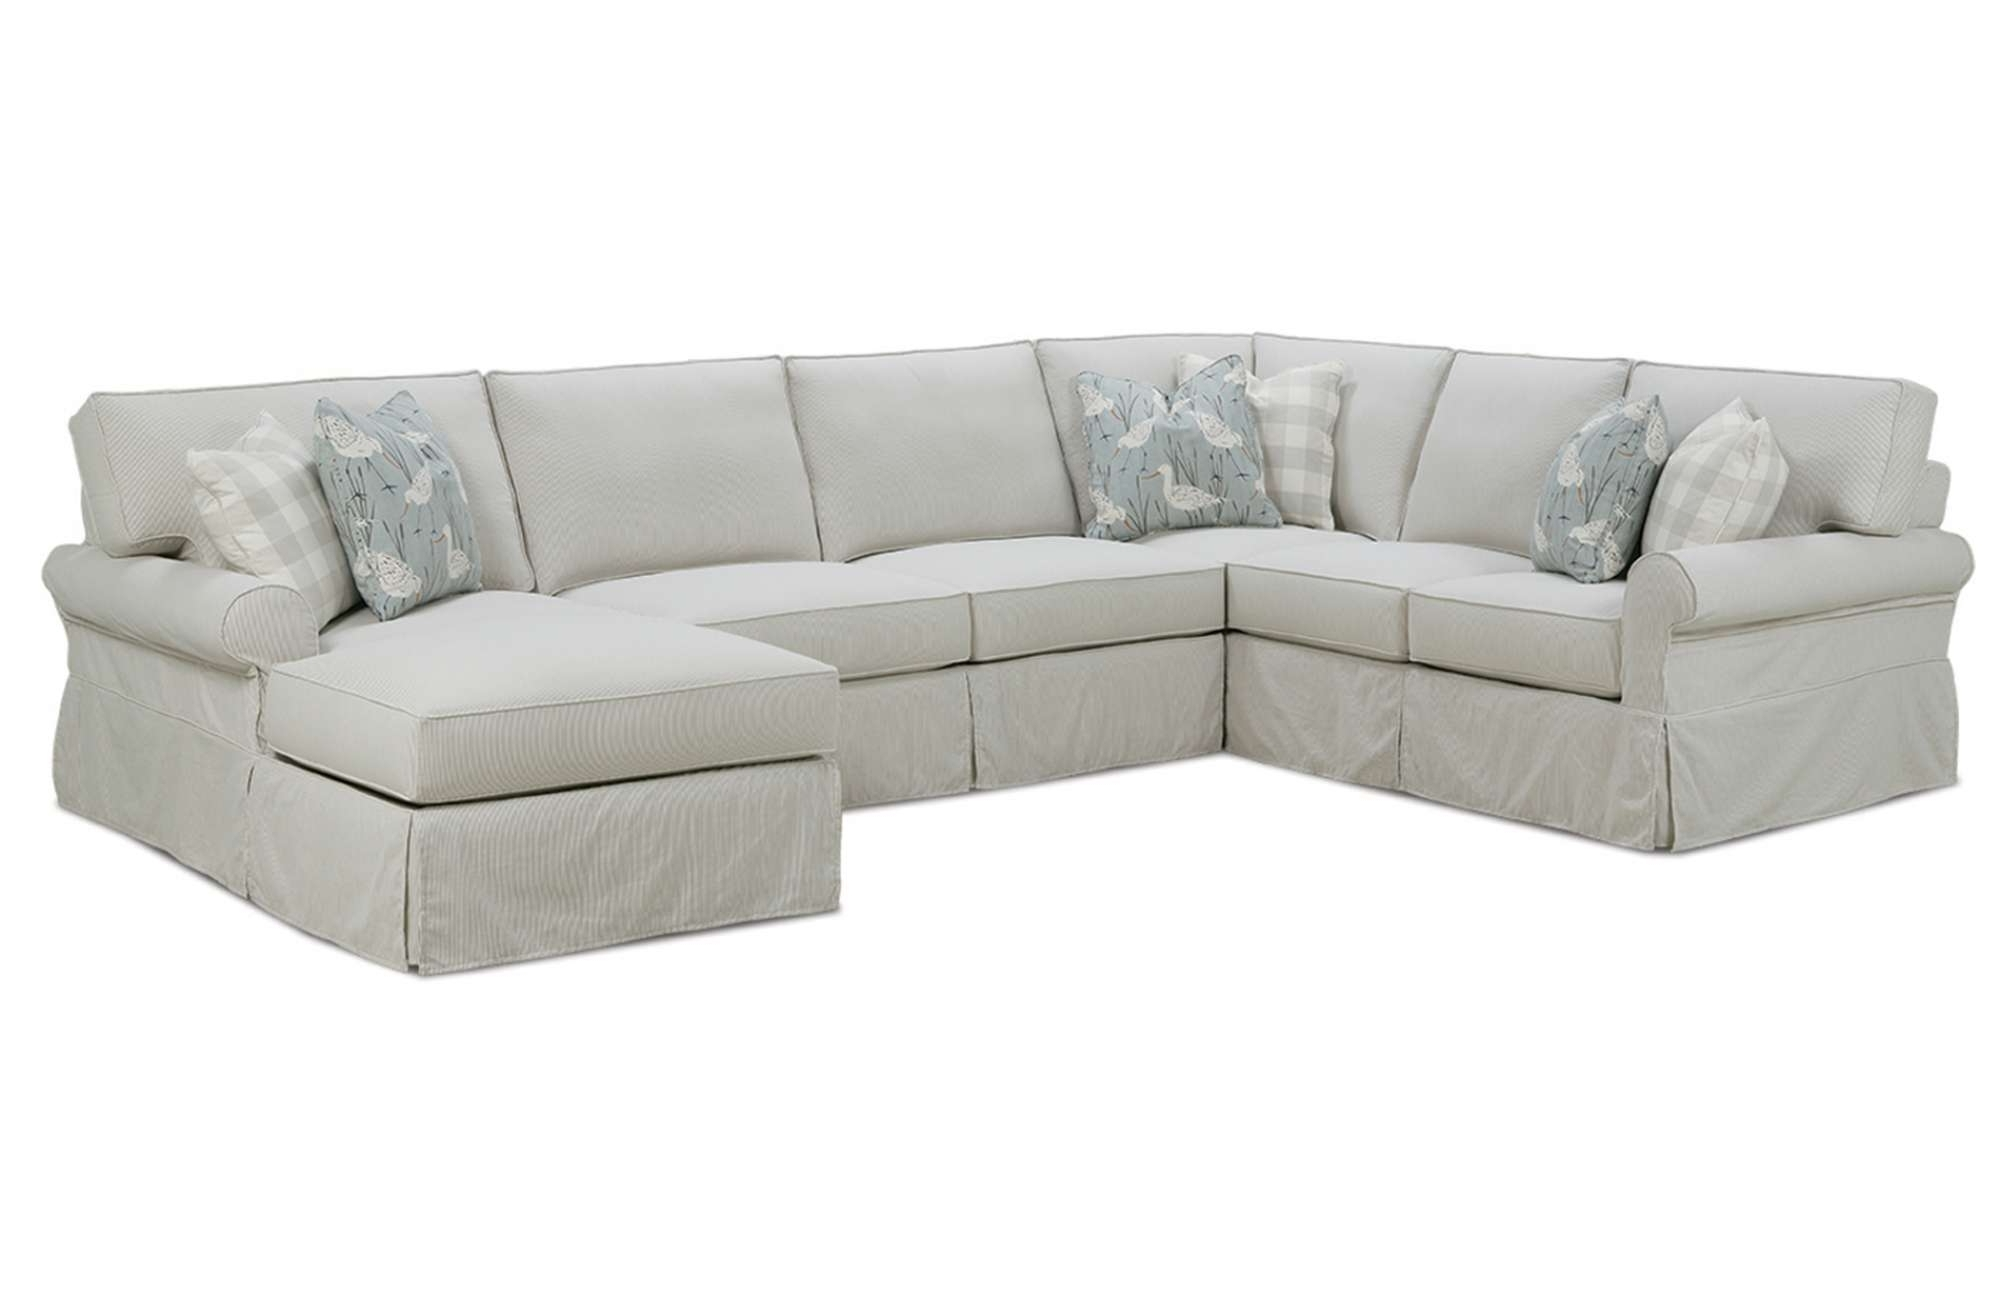 Most Popular Slipcovered Sofas With Chaise Regarding Easton Slipcover Sectionalrowe Furniture (View 10 of 15)